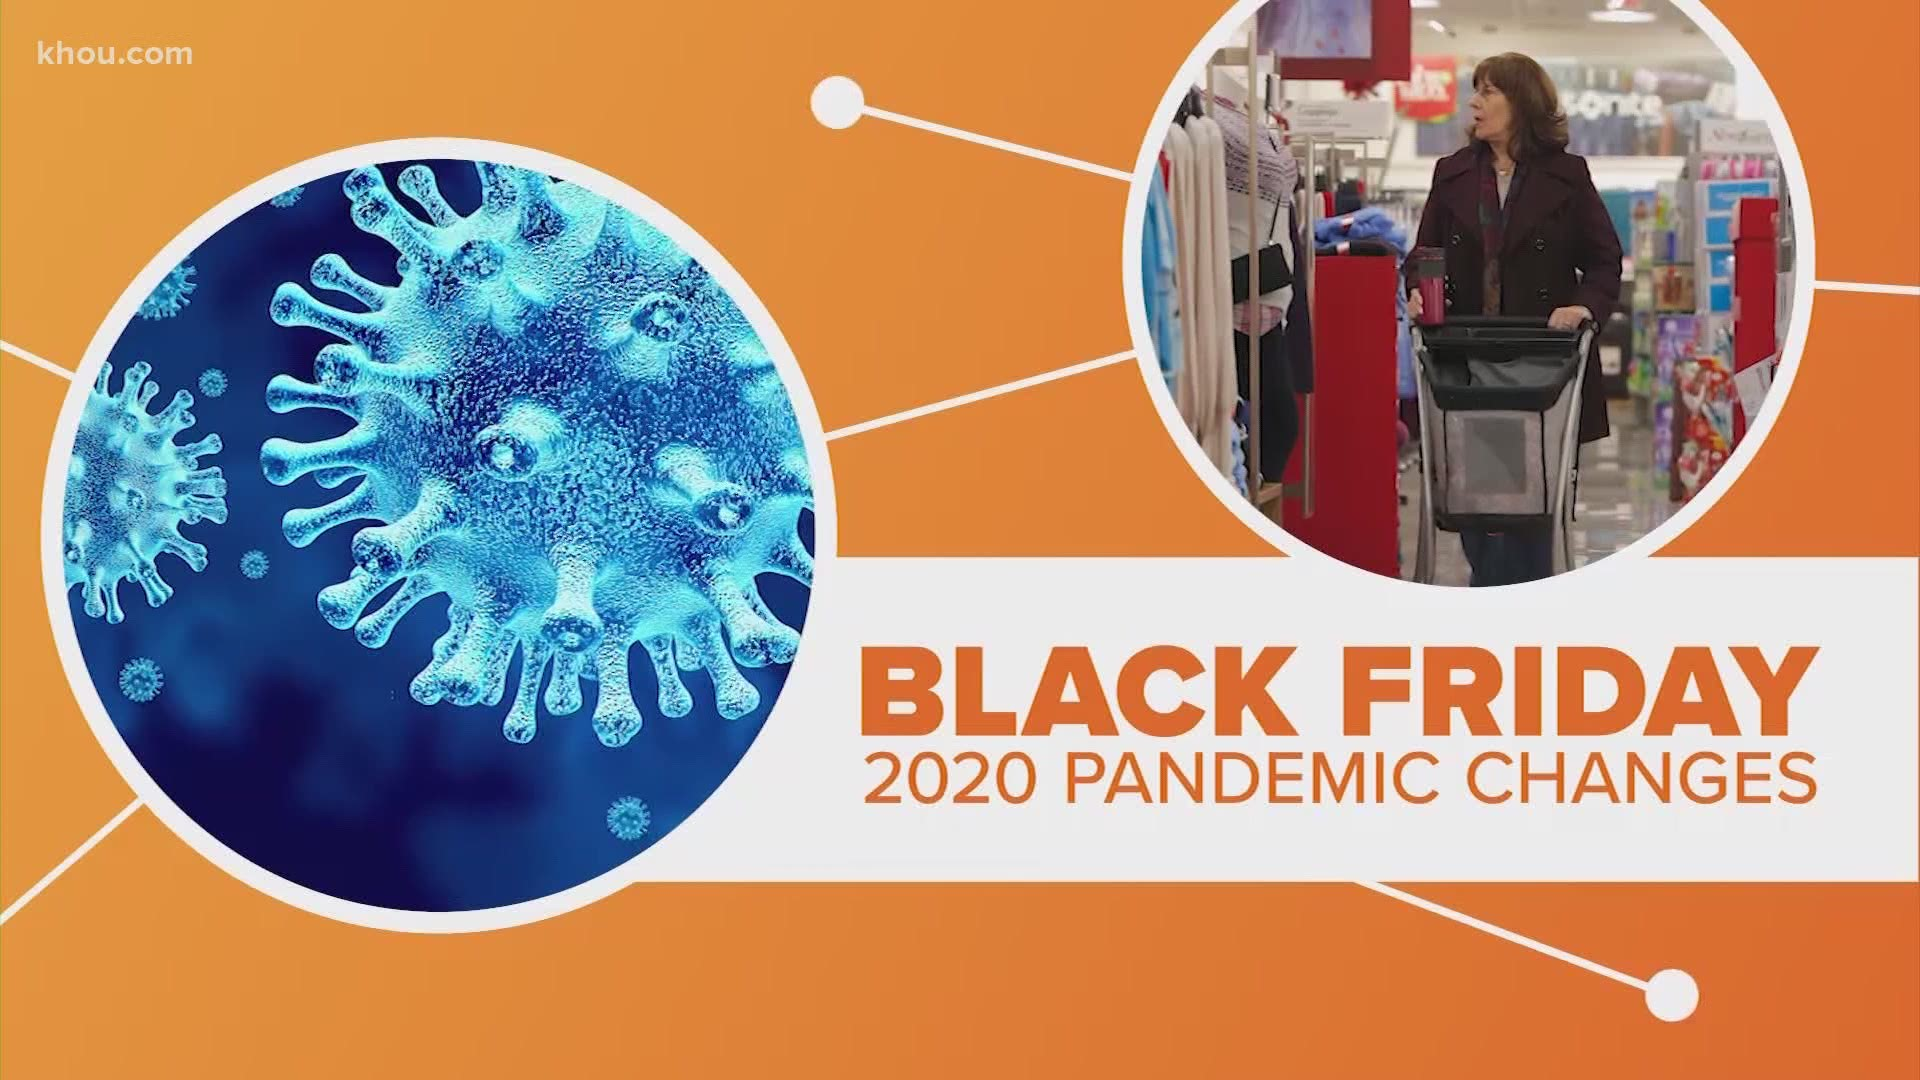 Home Depot Releases 2020 Black Friday Ad With Extended Shopping King5 Com